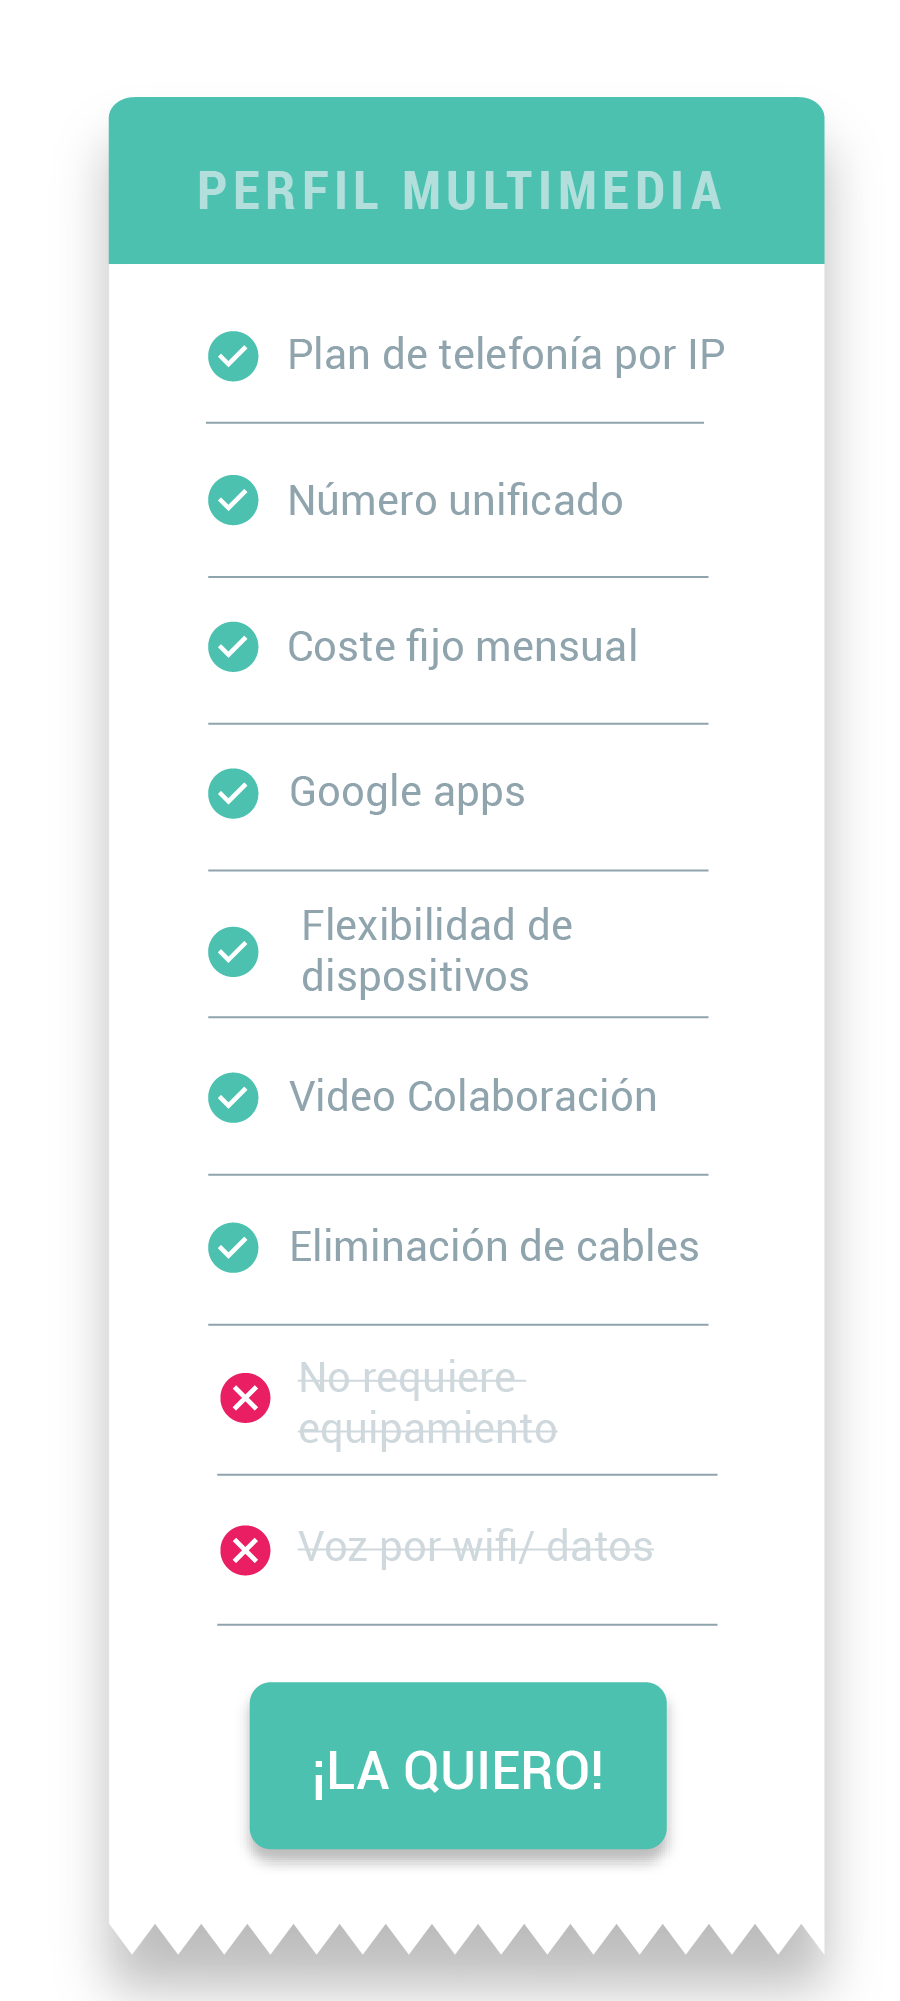 Perfil multimedia con flexibilidad de dispositivos